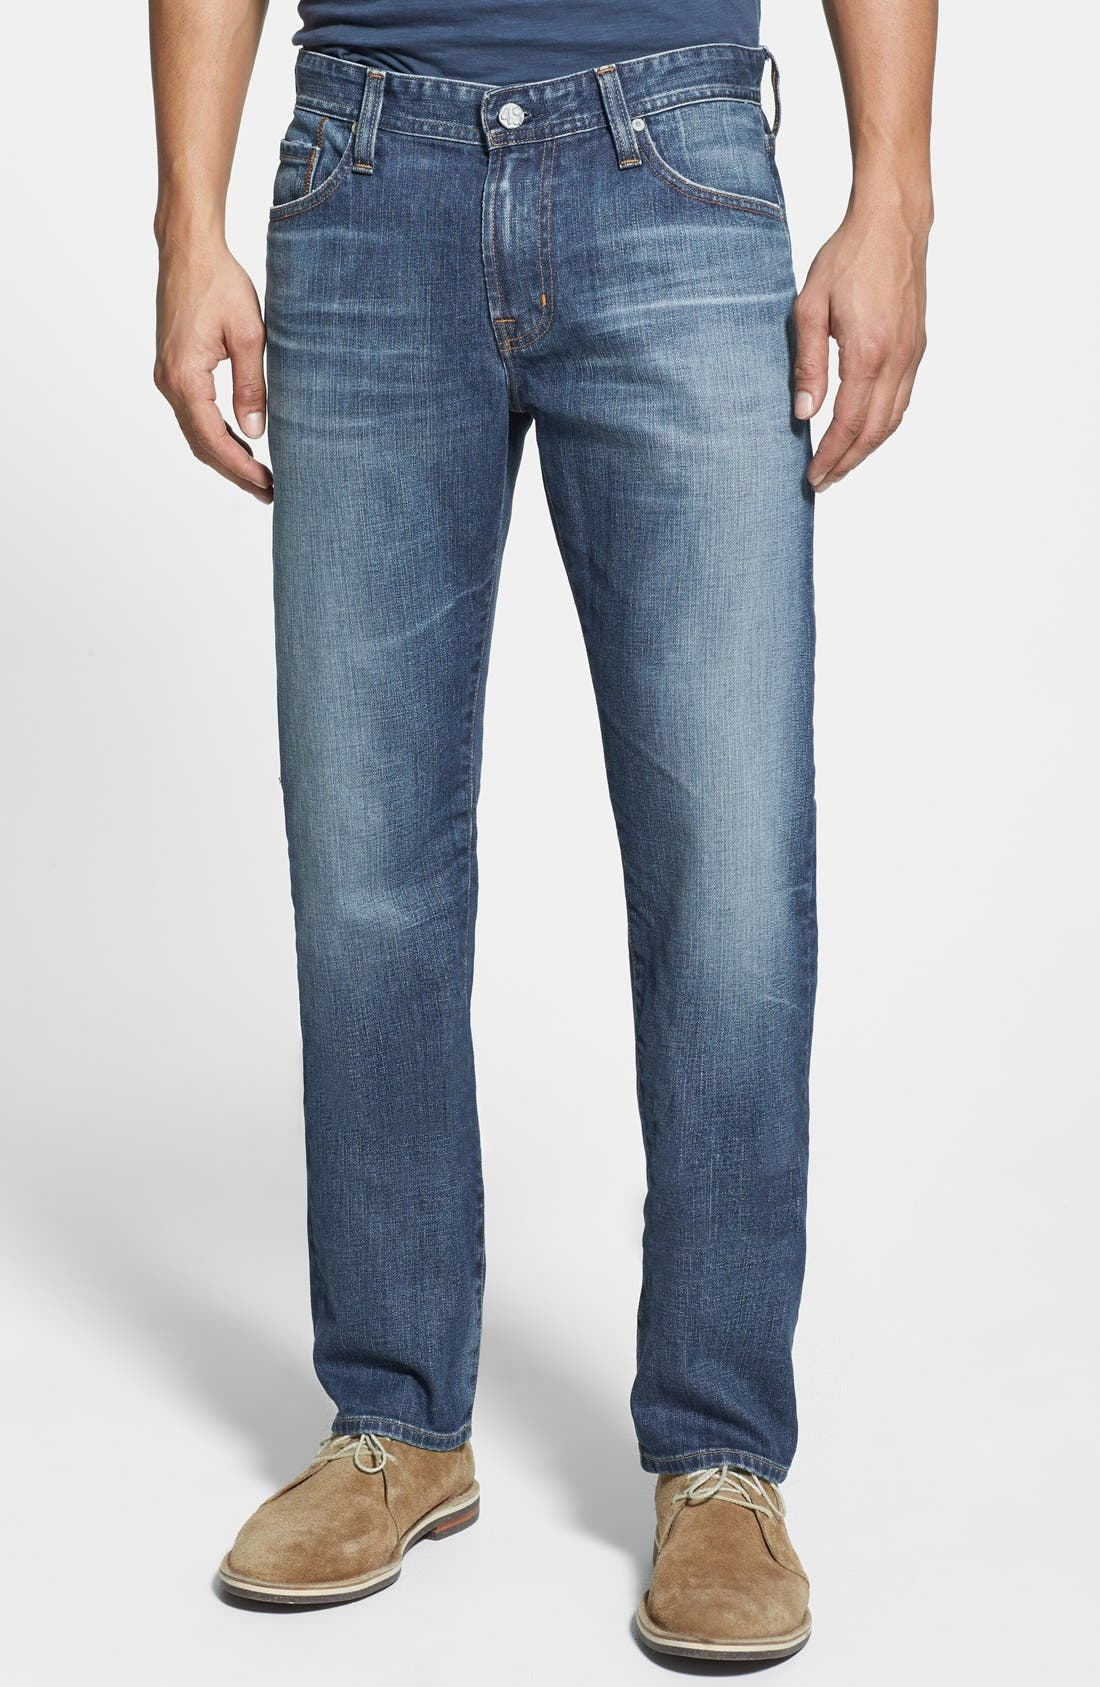 Alternate Image 1 Selected - AG 'Graduate' Tailored Fit Straight Leg Jeans (13 Years Launch)